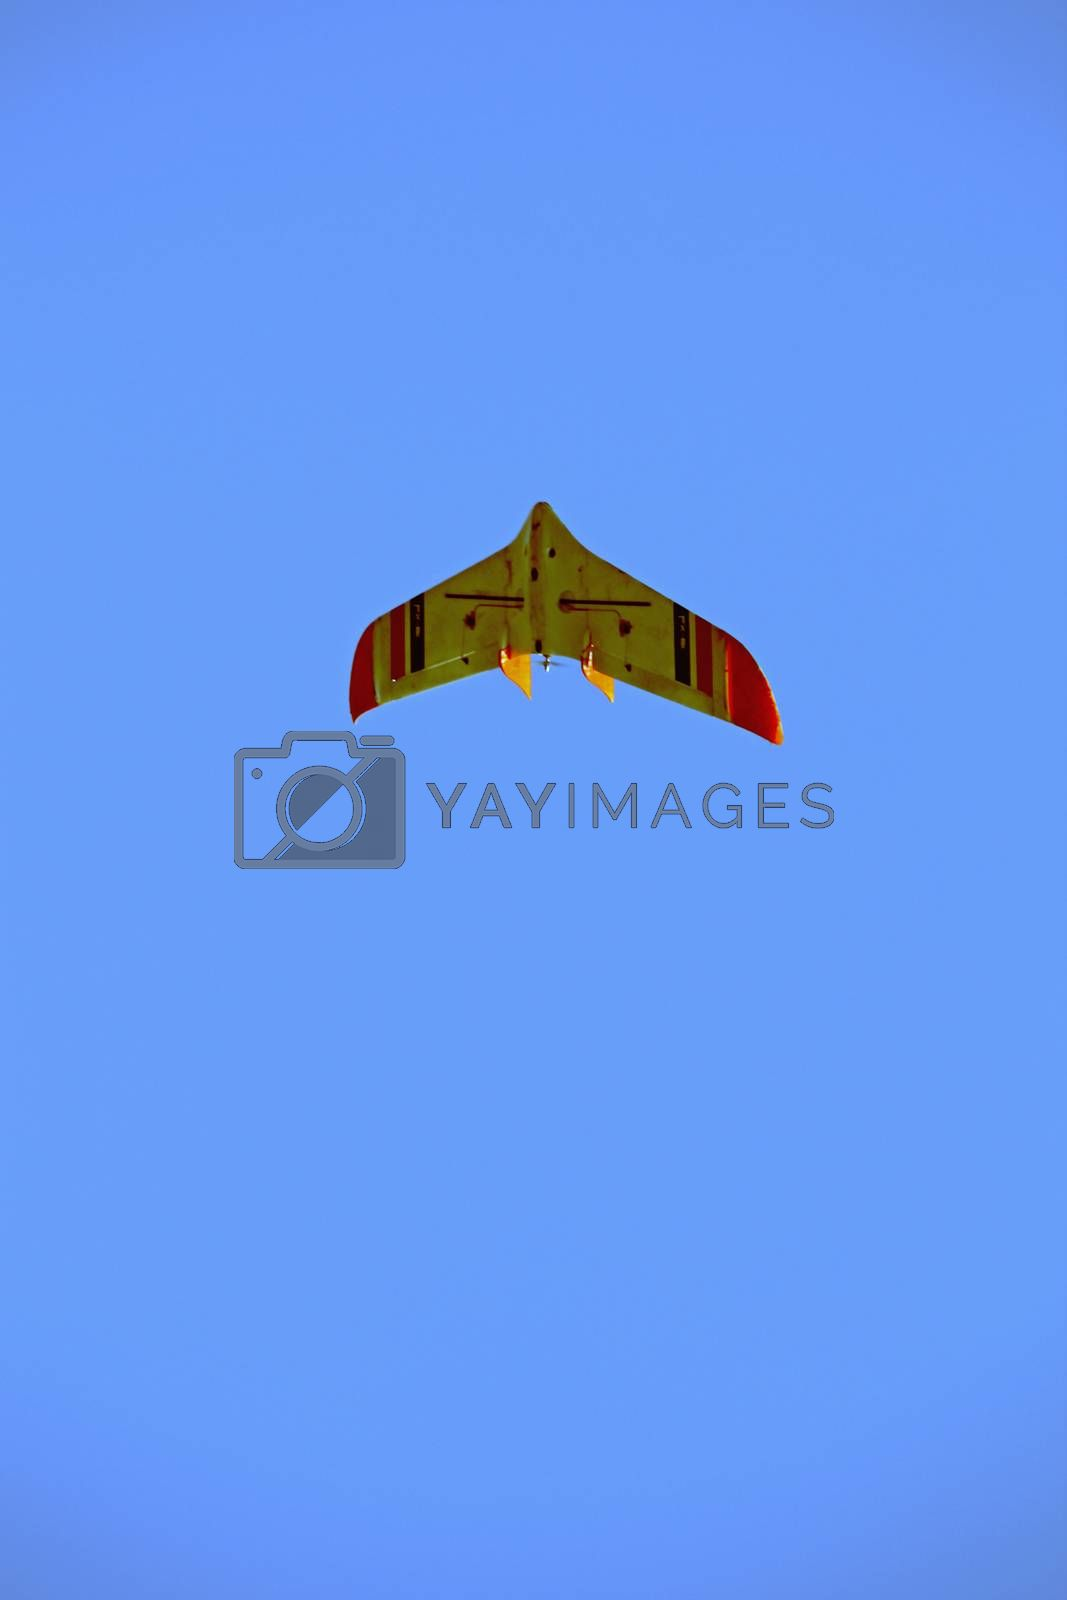 Royalty free image of RC model airplane flying by yands